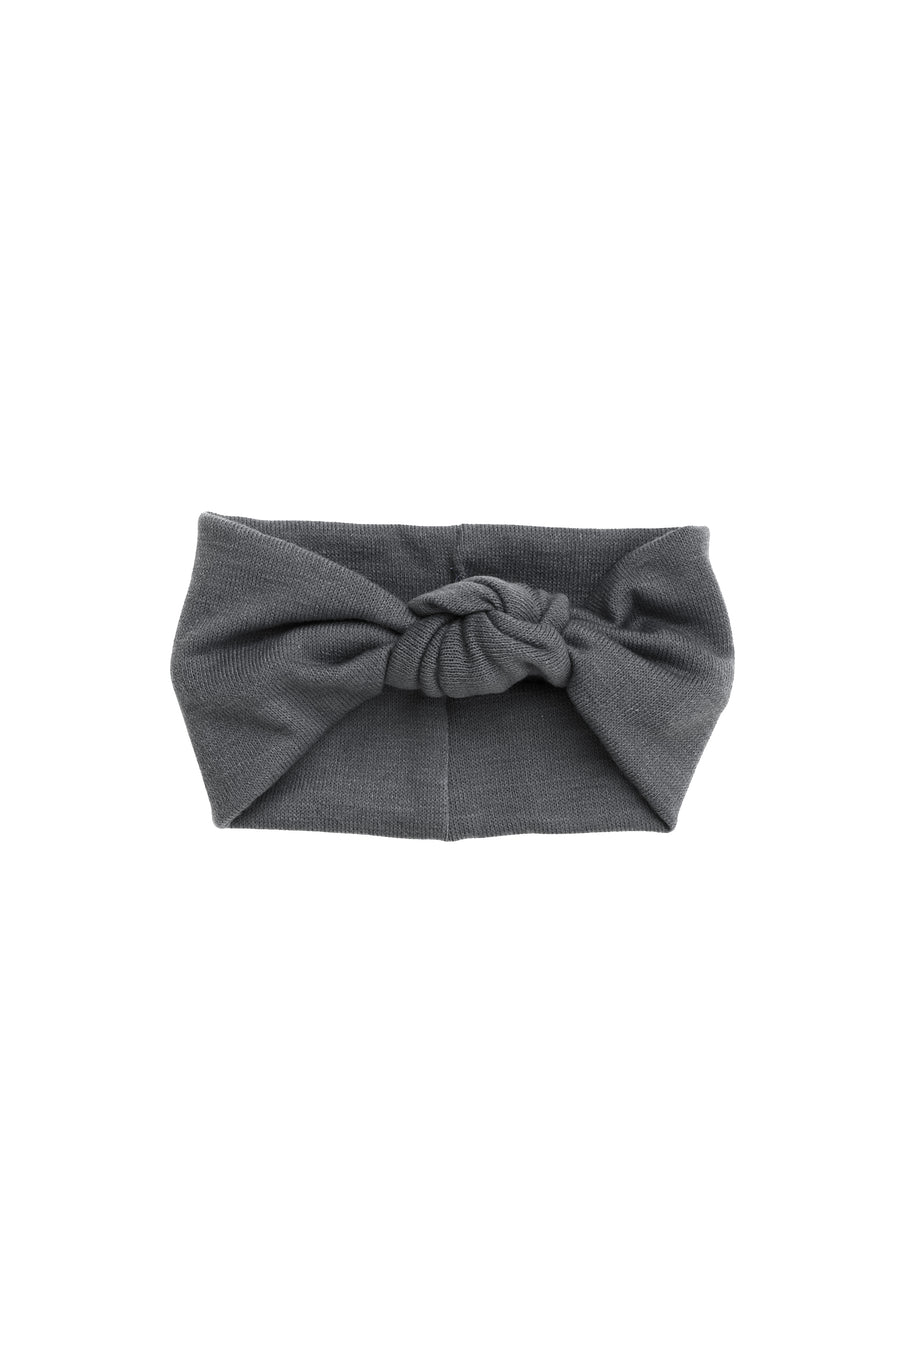 Knot Wrap - Grey Wool